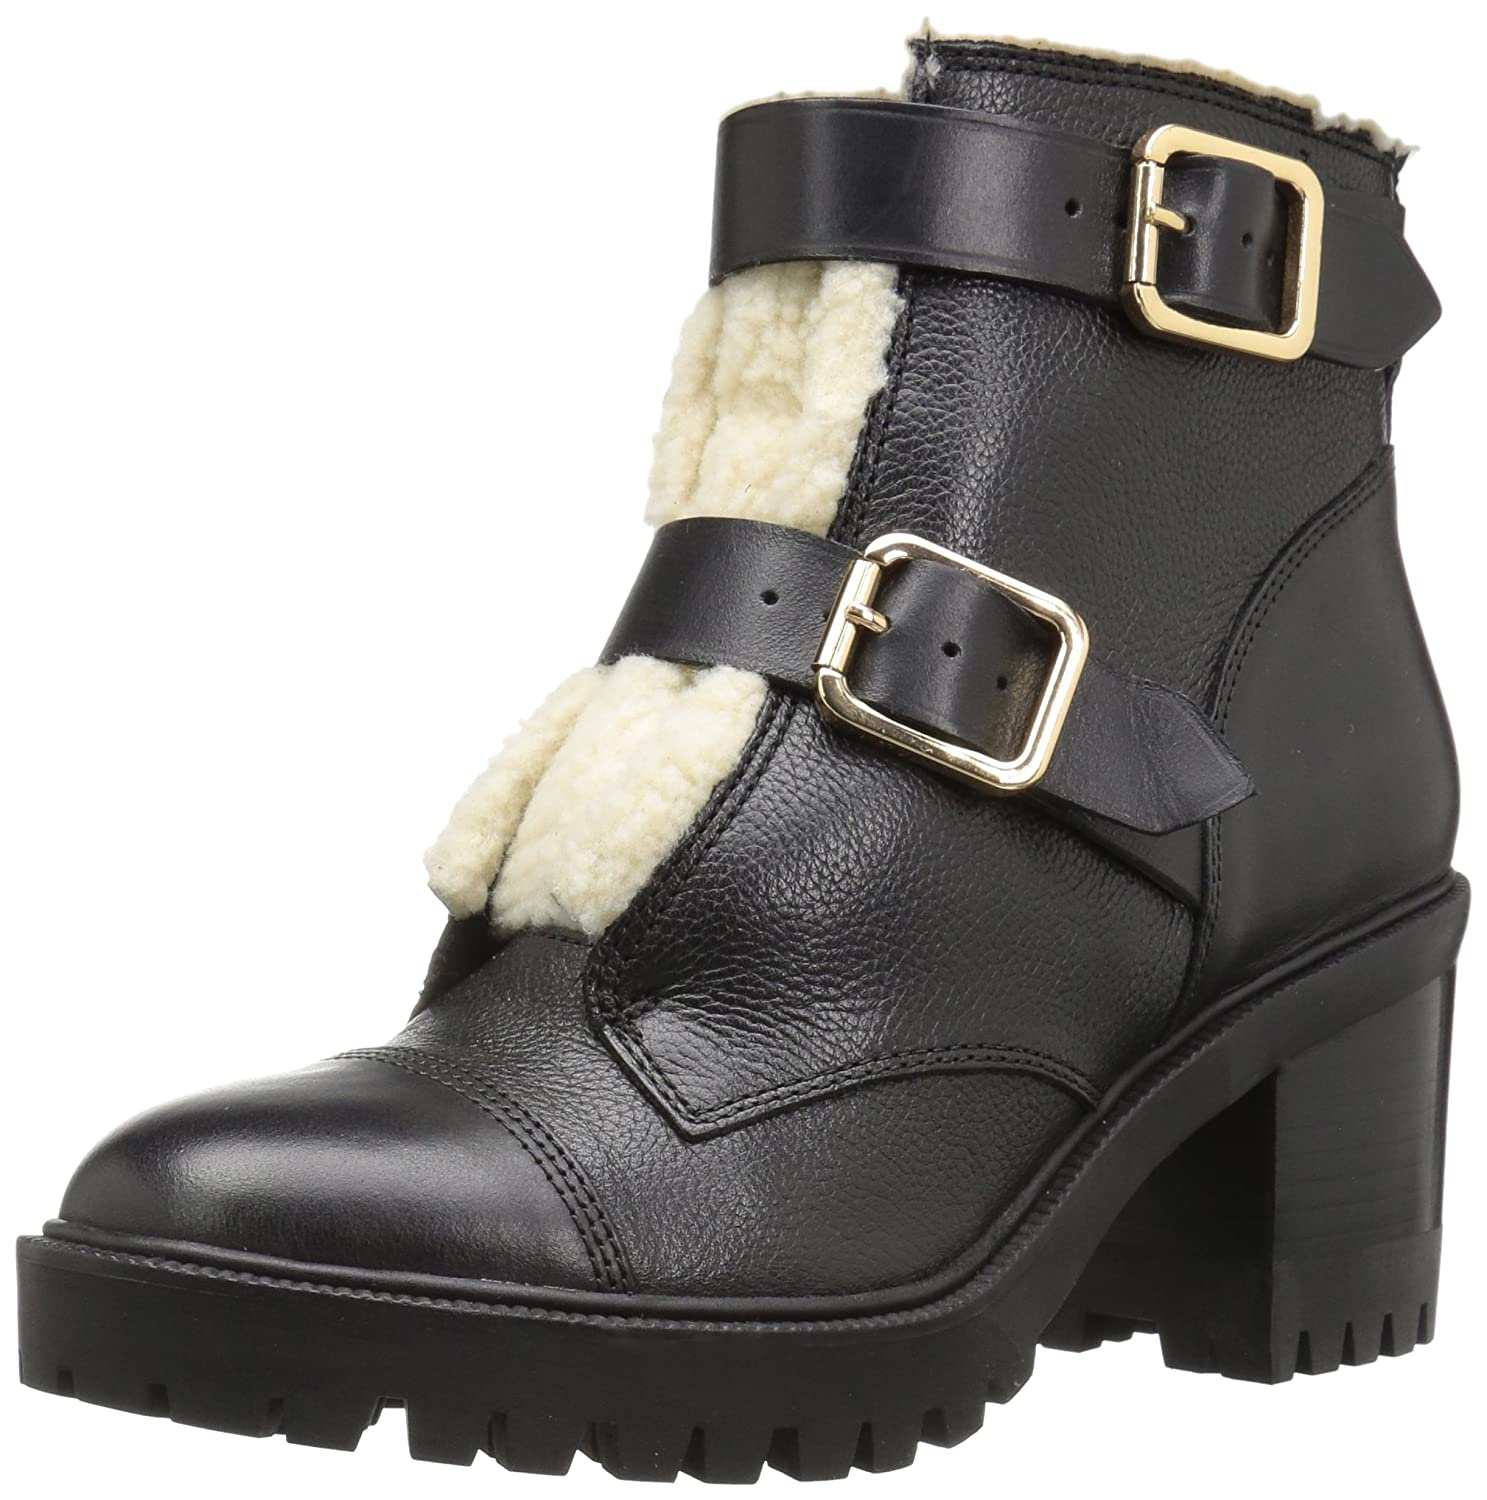 Nine West Women's Ingramm Leather Ankle Boot B06X6GGGZP 8.5 B(M) US|Black Multi